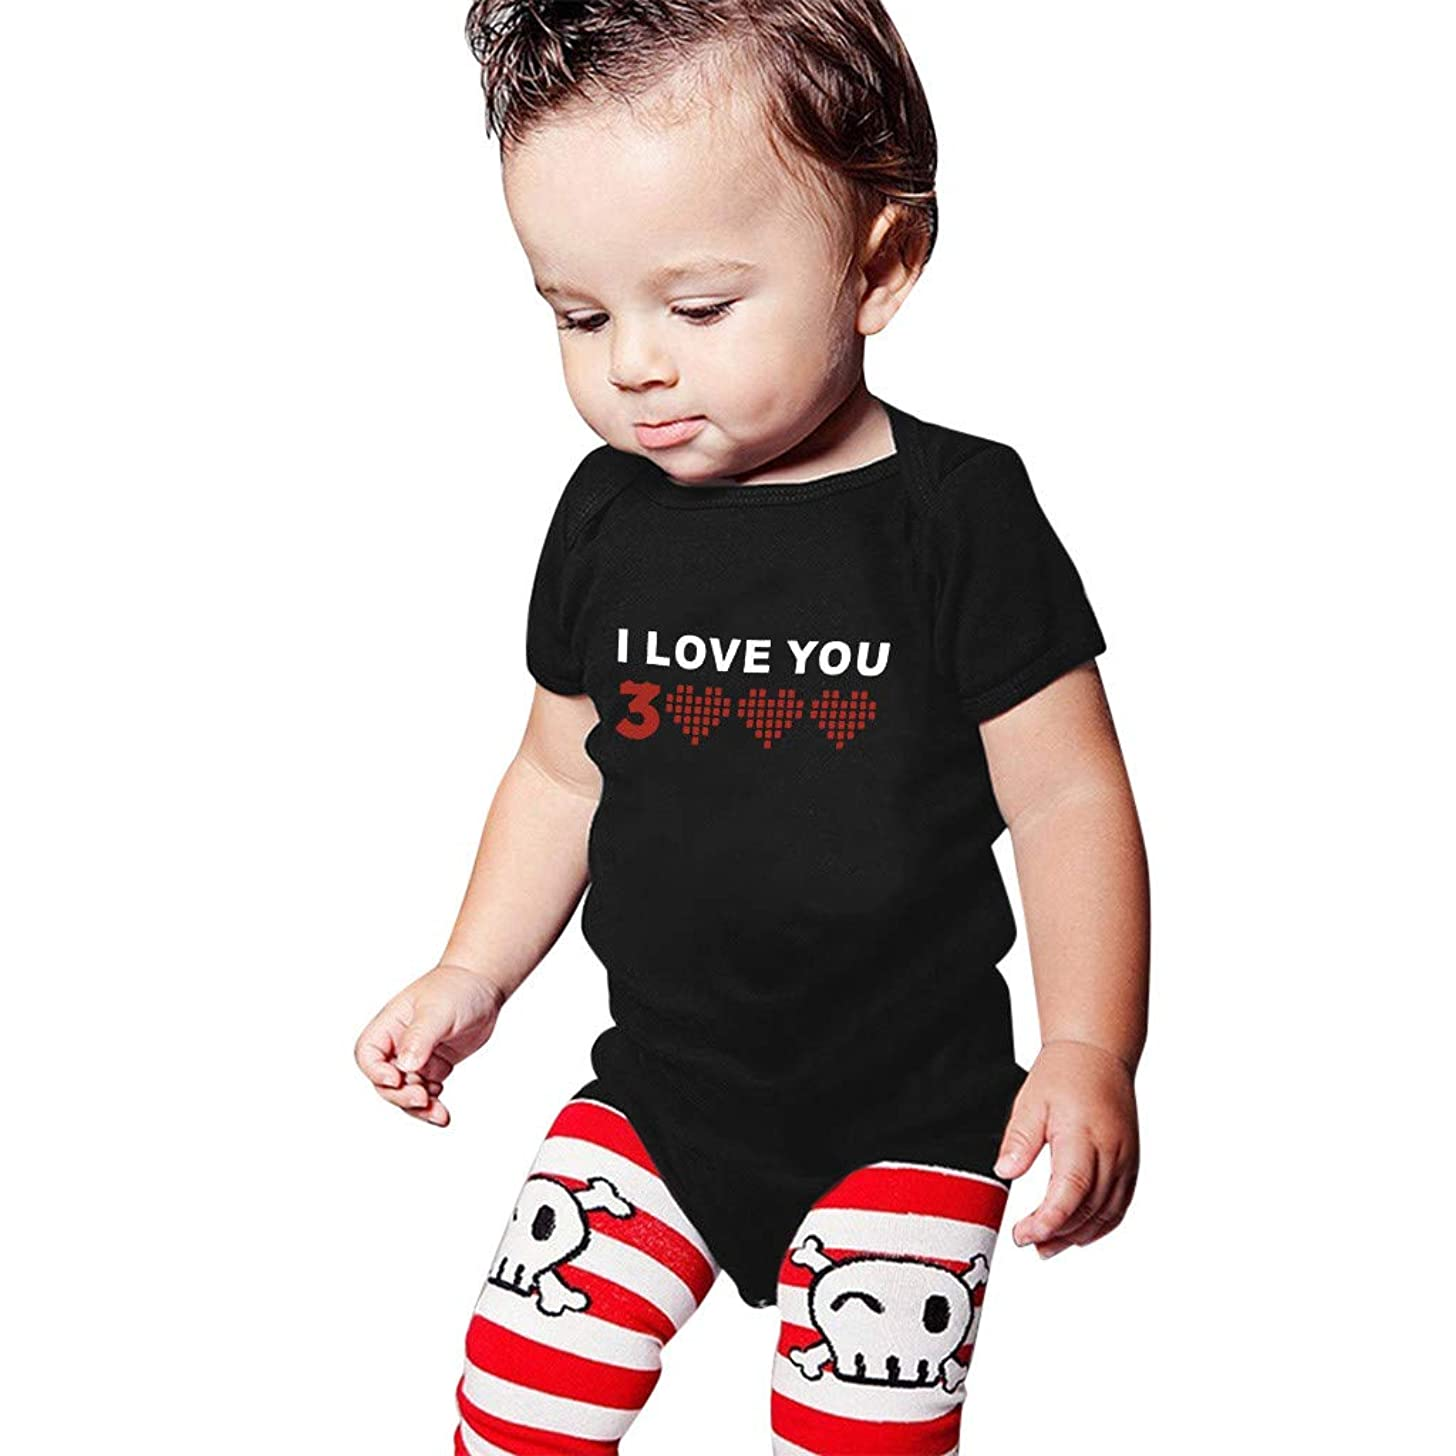 Daddy I Love You Three Thousand Baby Bodysuits Gift for Father's Day Awesome Superhero Dad Toldder T-Shirt New Baby Cotton Shirts